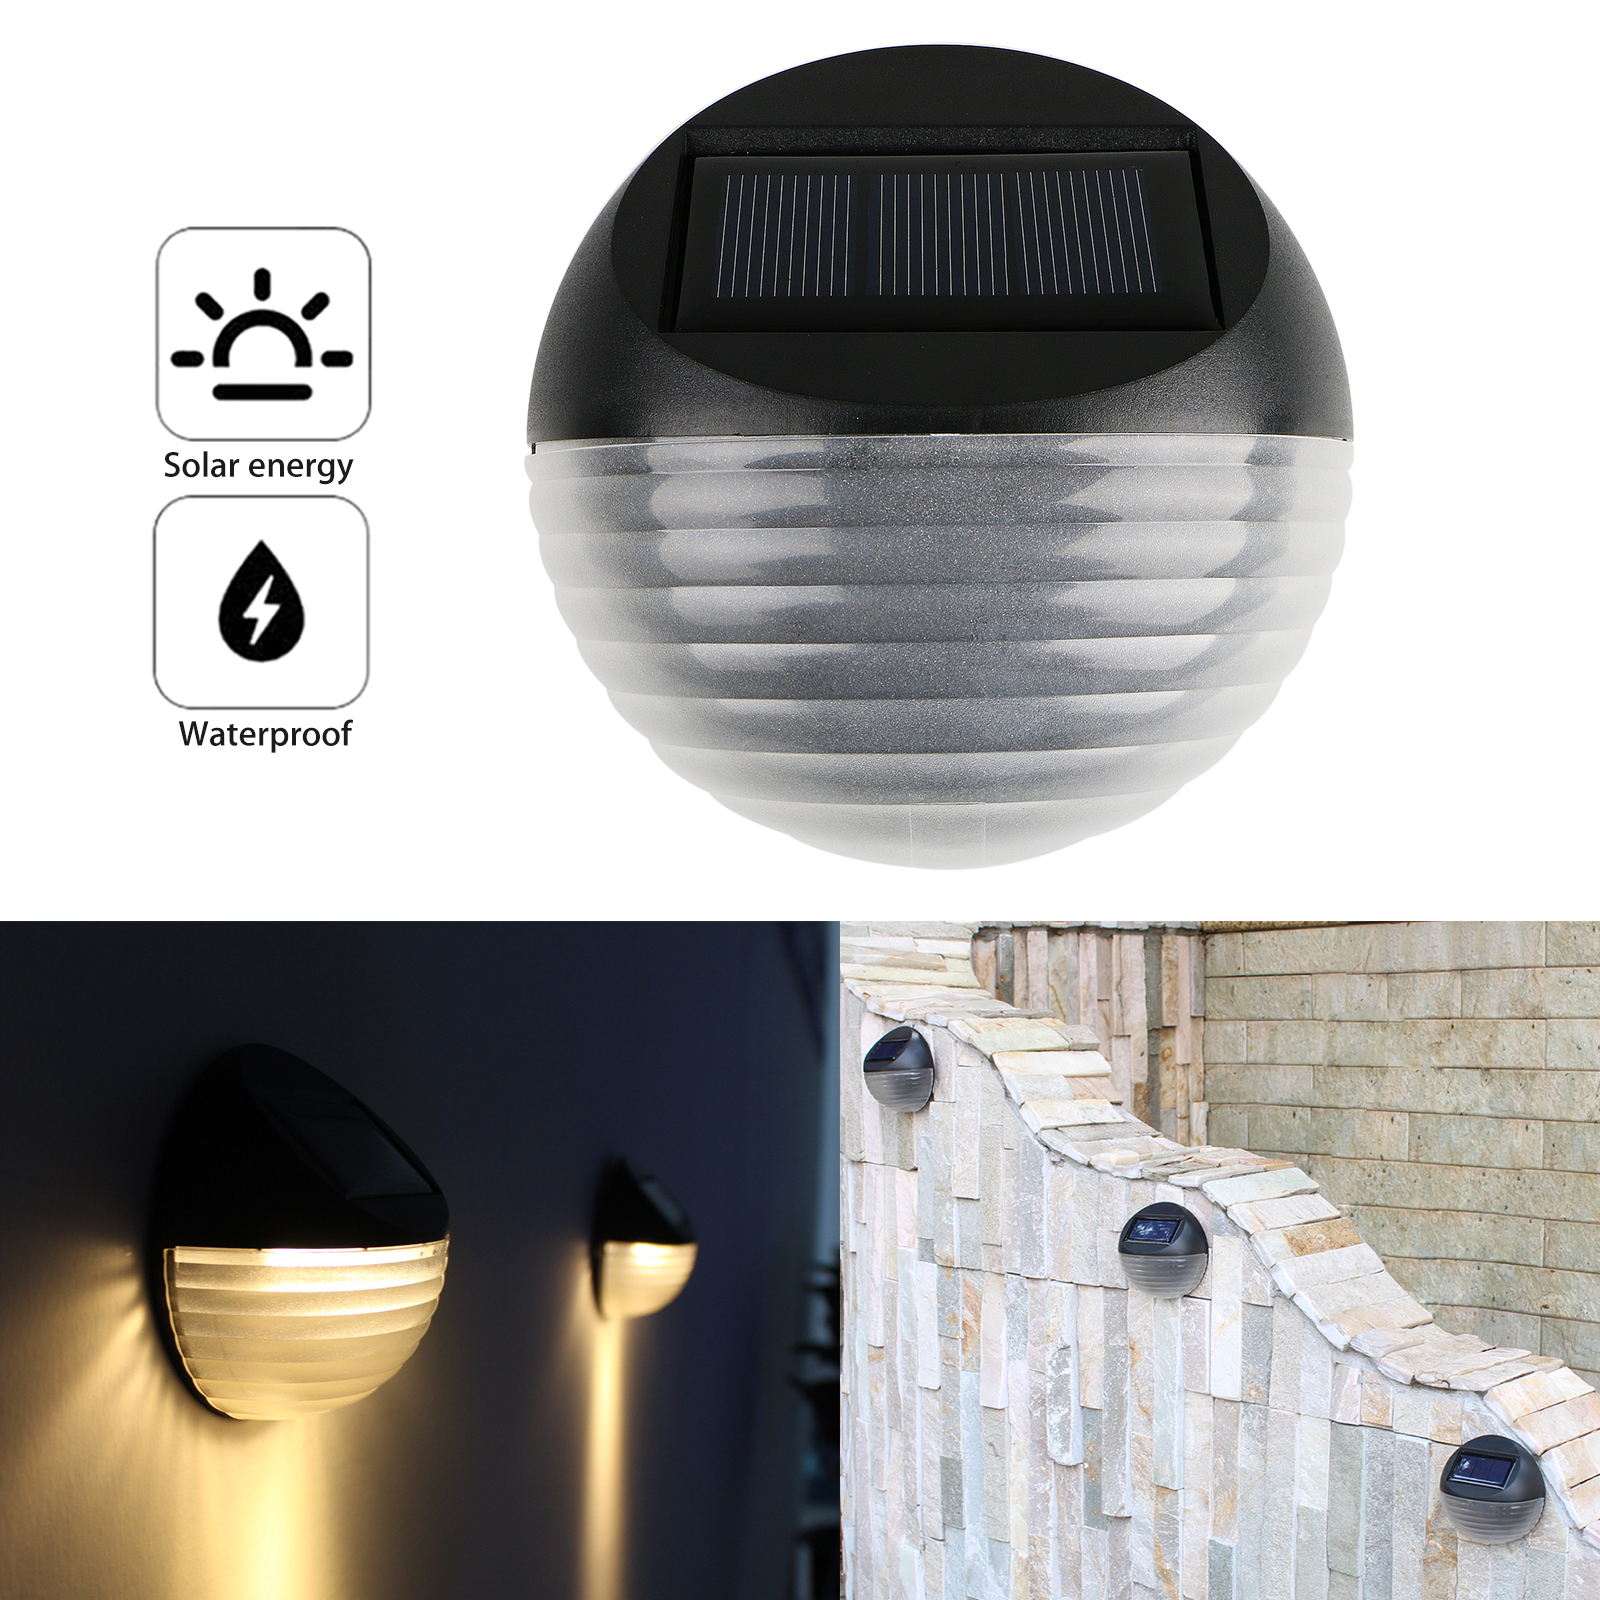 6-LED Super Bright Solar Wall-Mounted Light, IP65 Waterproof LED Garden Solar Wall Light for Outdoor Using, Garden, Outside Wall